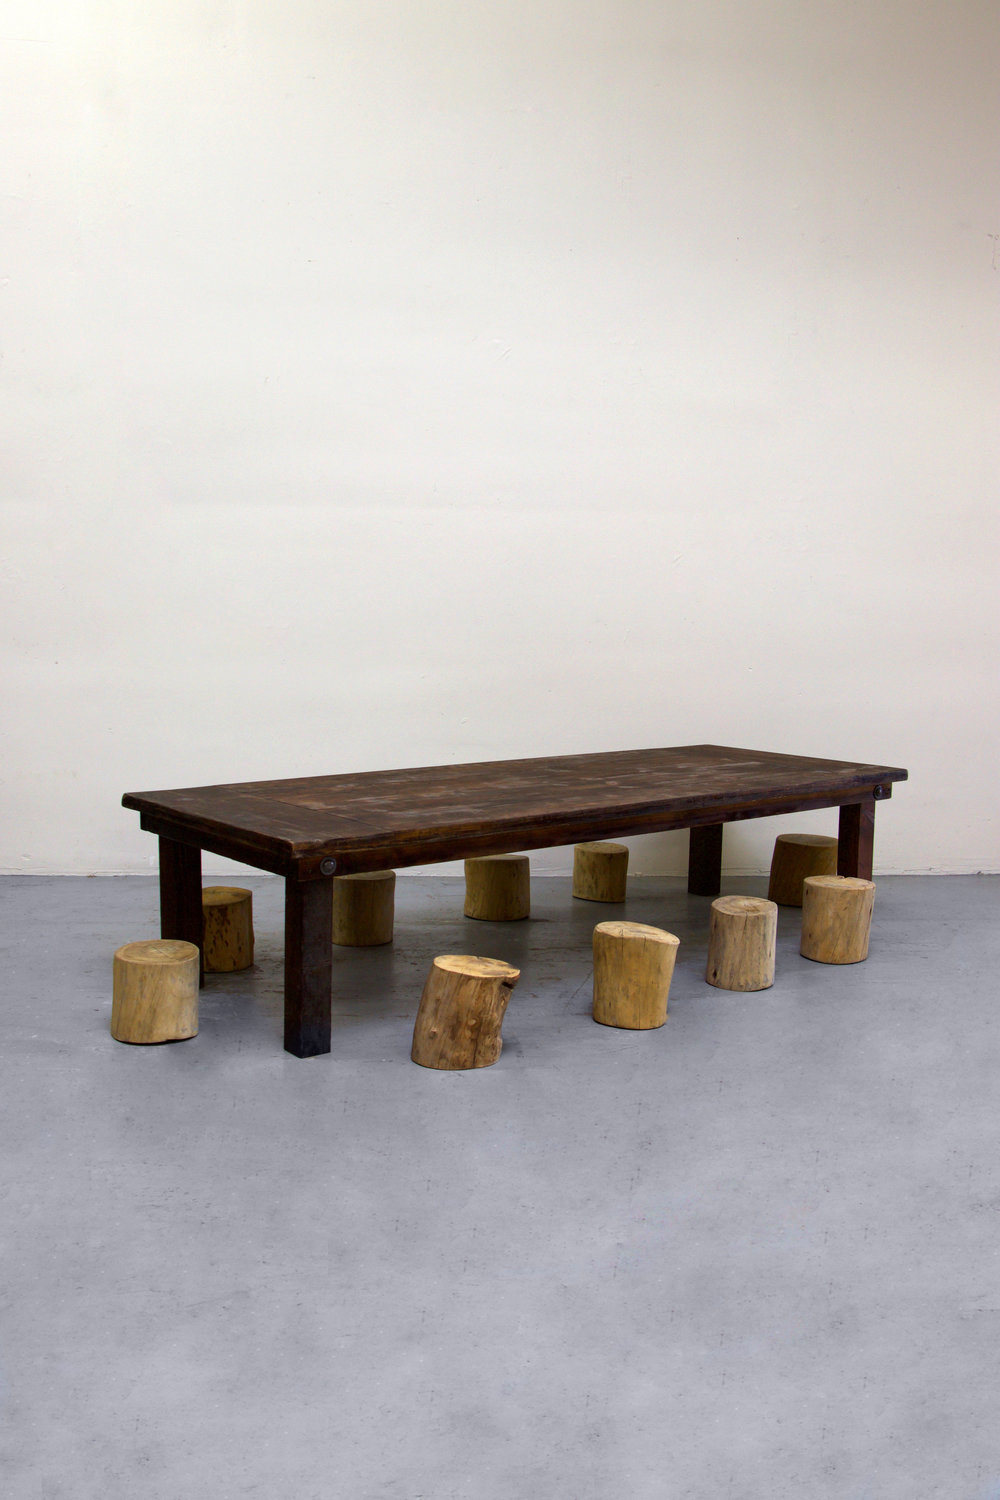 1 Kids Mahogany Farm Table w/ 10 Tree Stumps